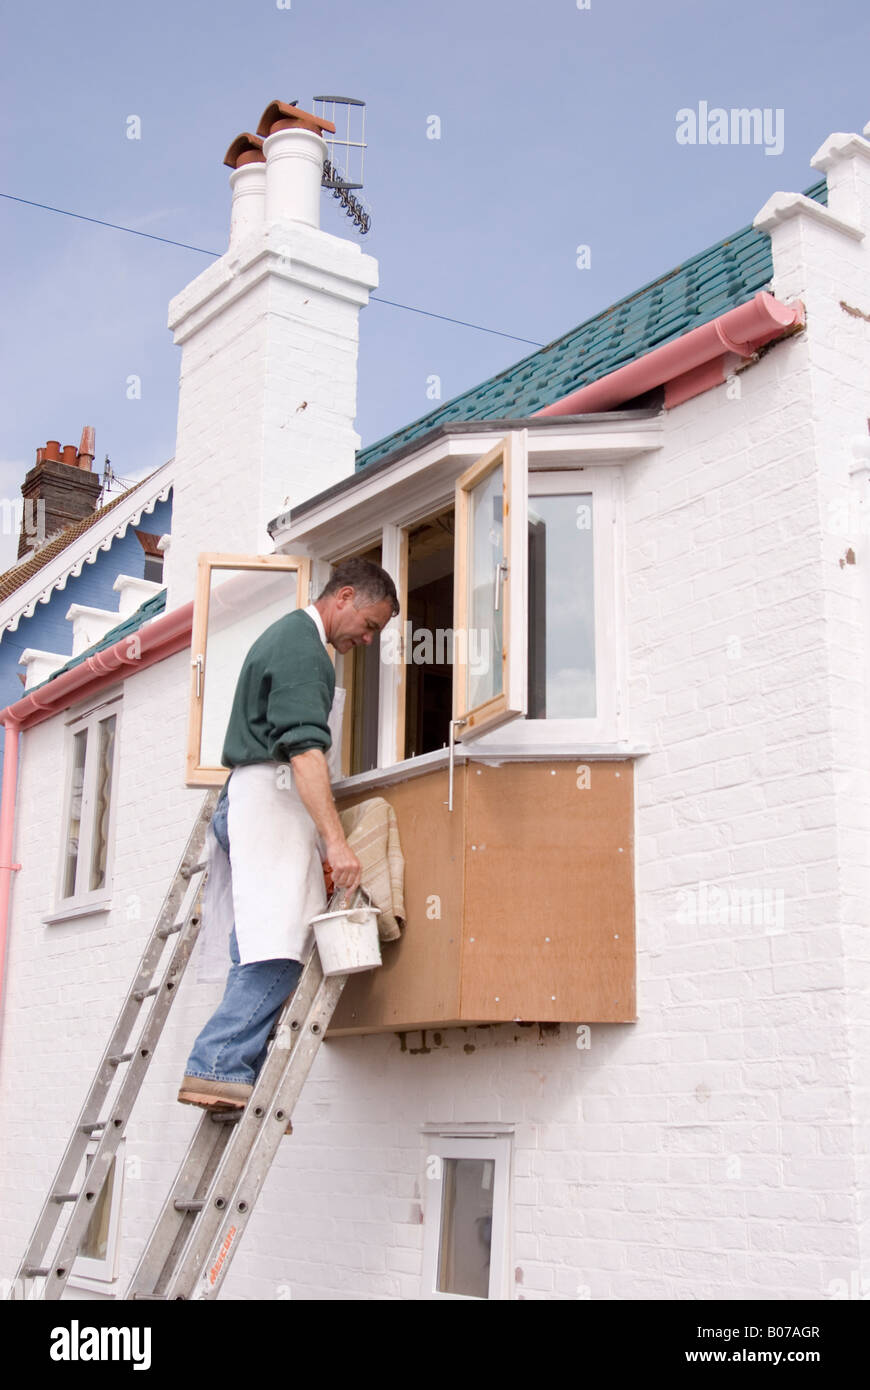 Man Painting exterior Window On House Up Ladder in the uk